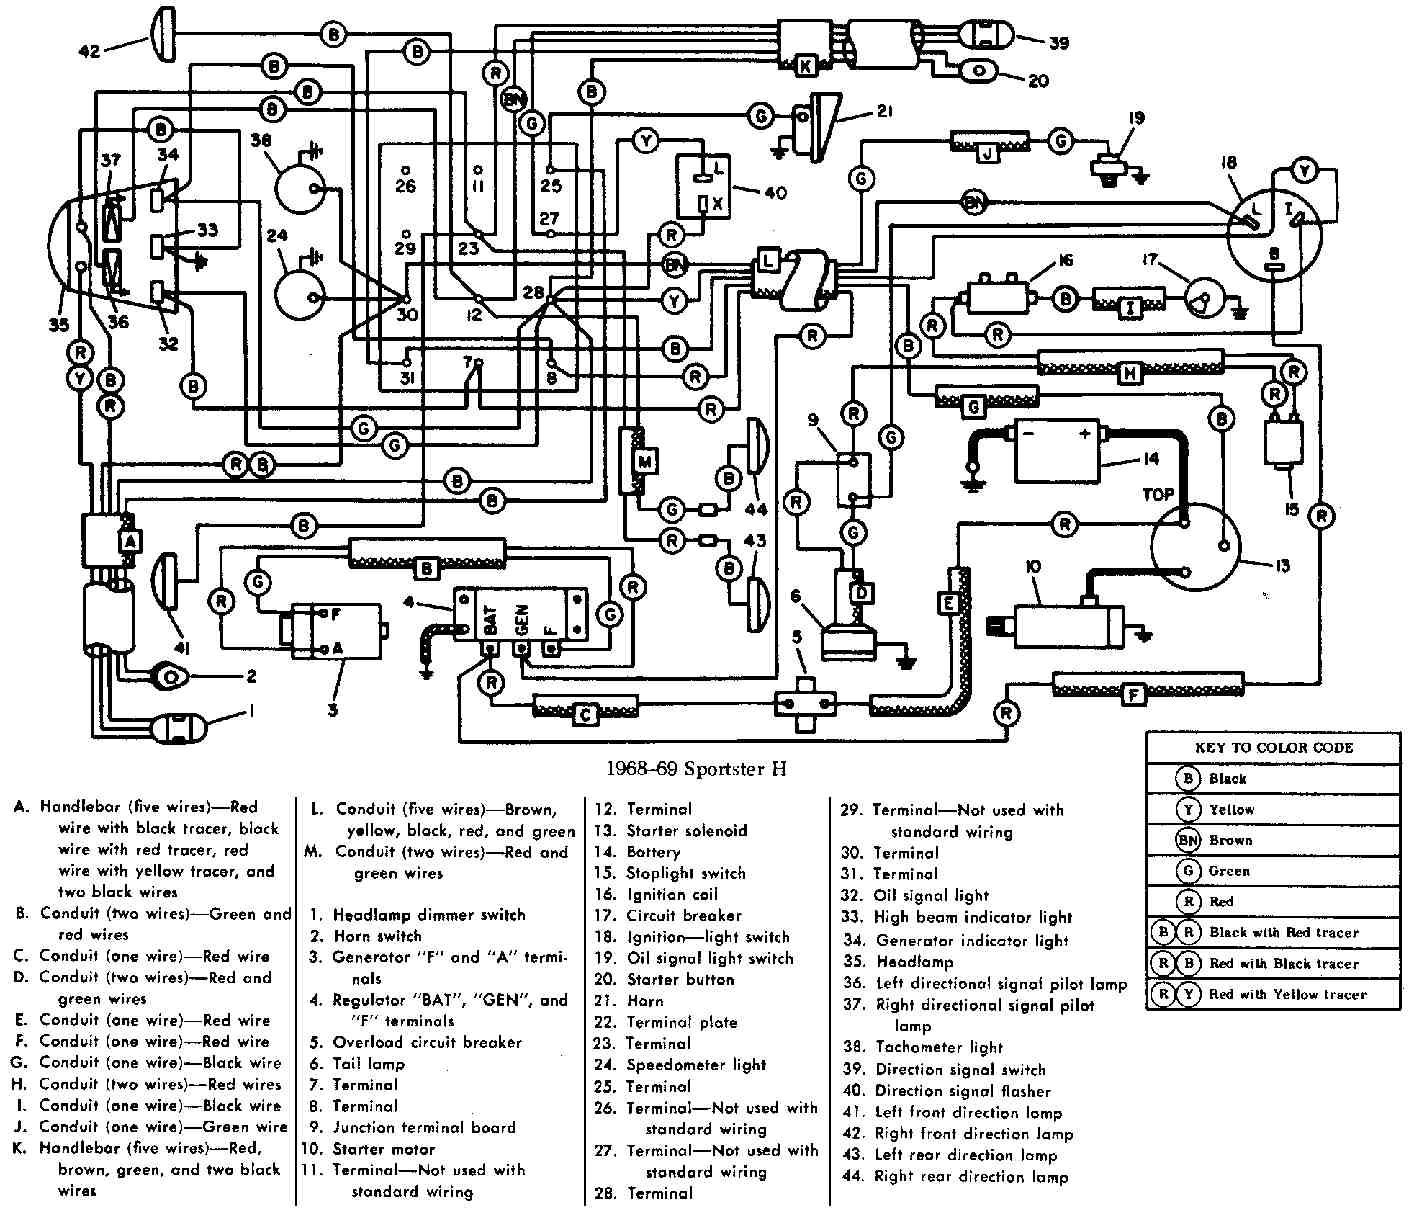 Harley Davidson Tachometer Wiring Diagram Free For Tach The Following Schematic Is Electrical Of Rh Pinterest Com